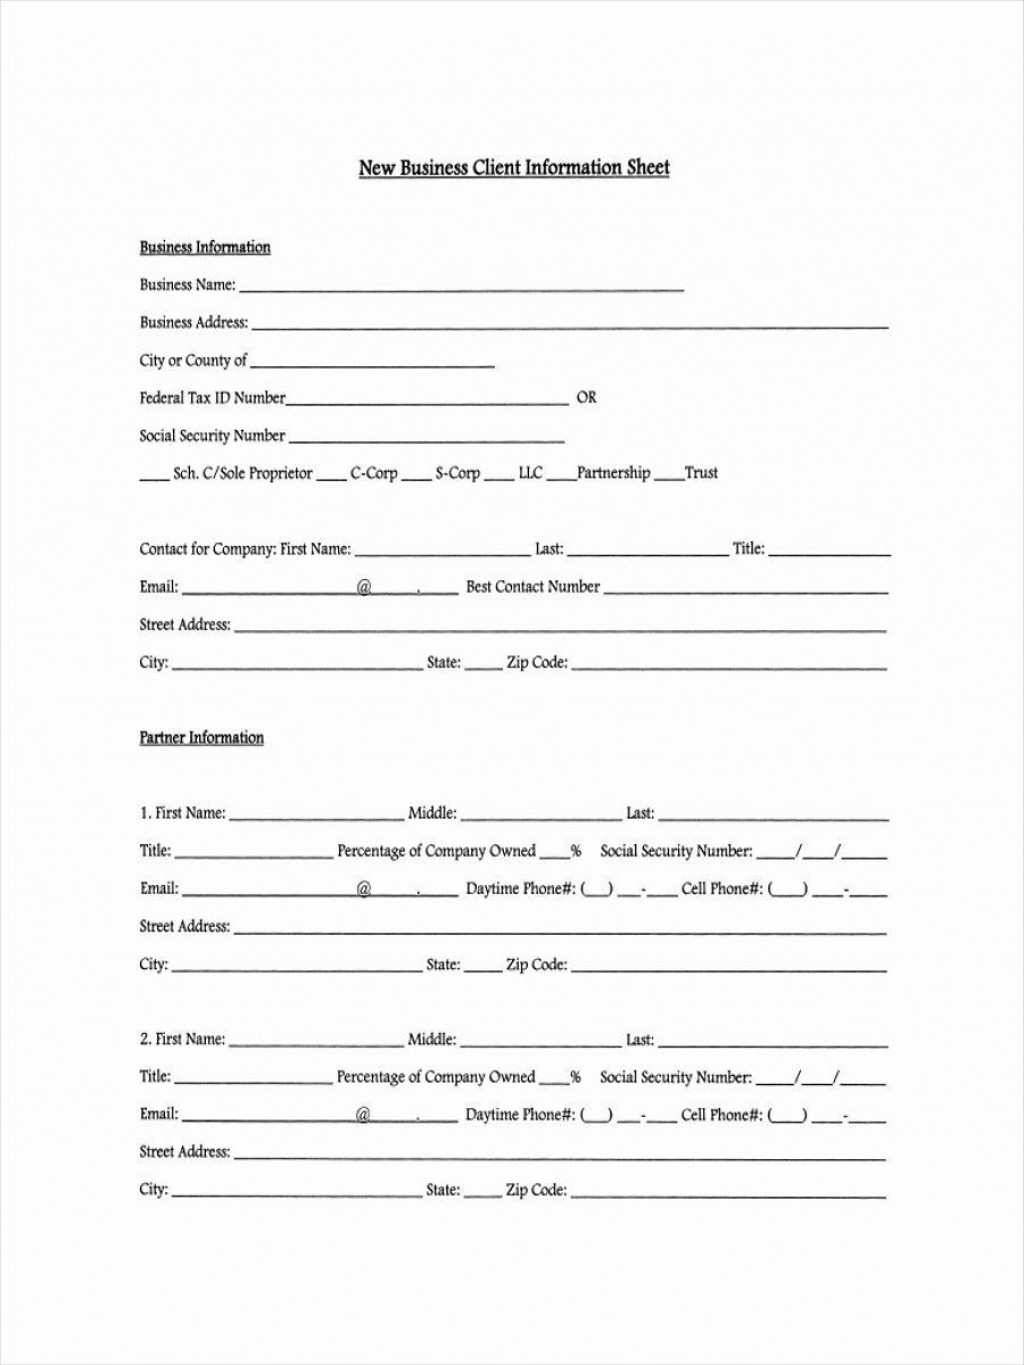 008 Imposing New Busines Client Information Form Template Image Large